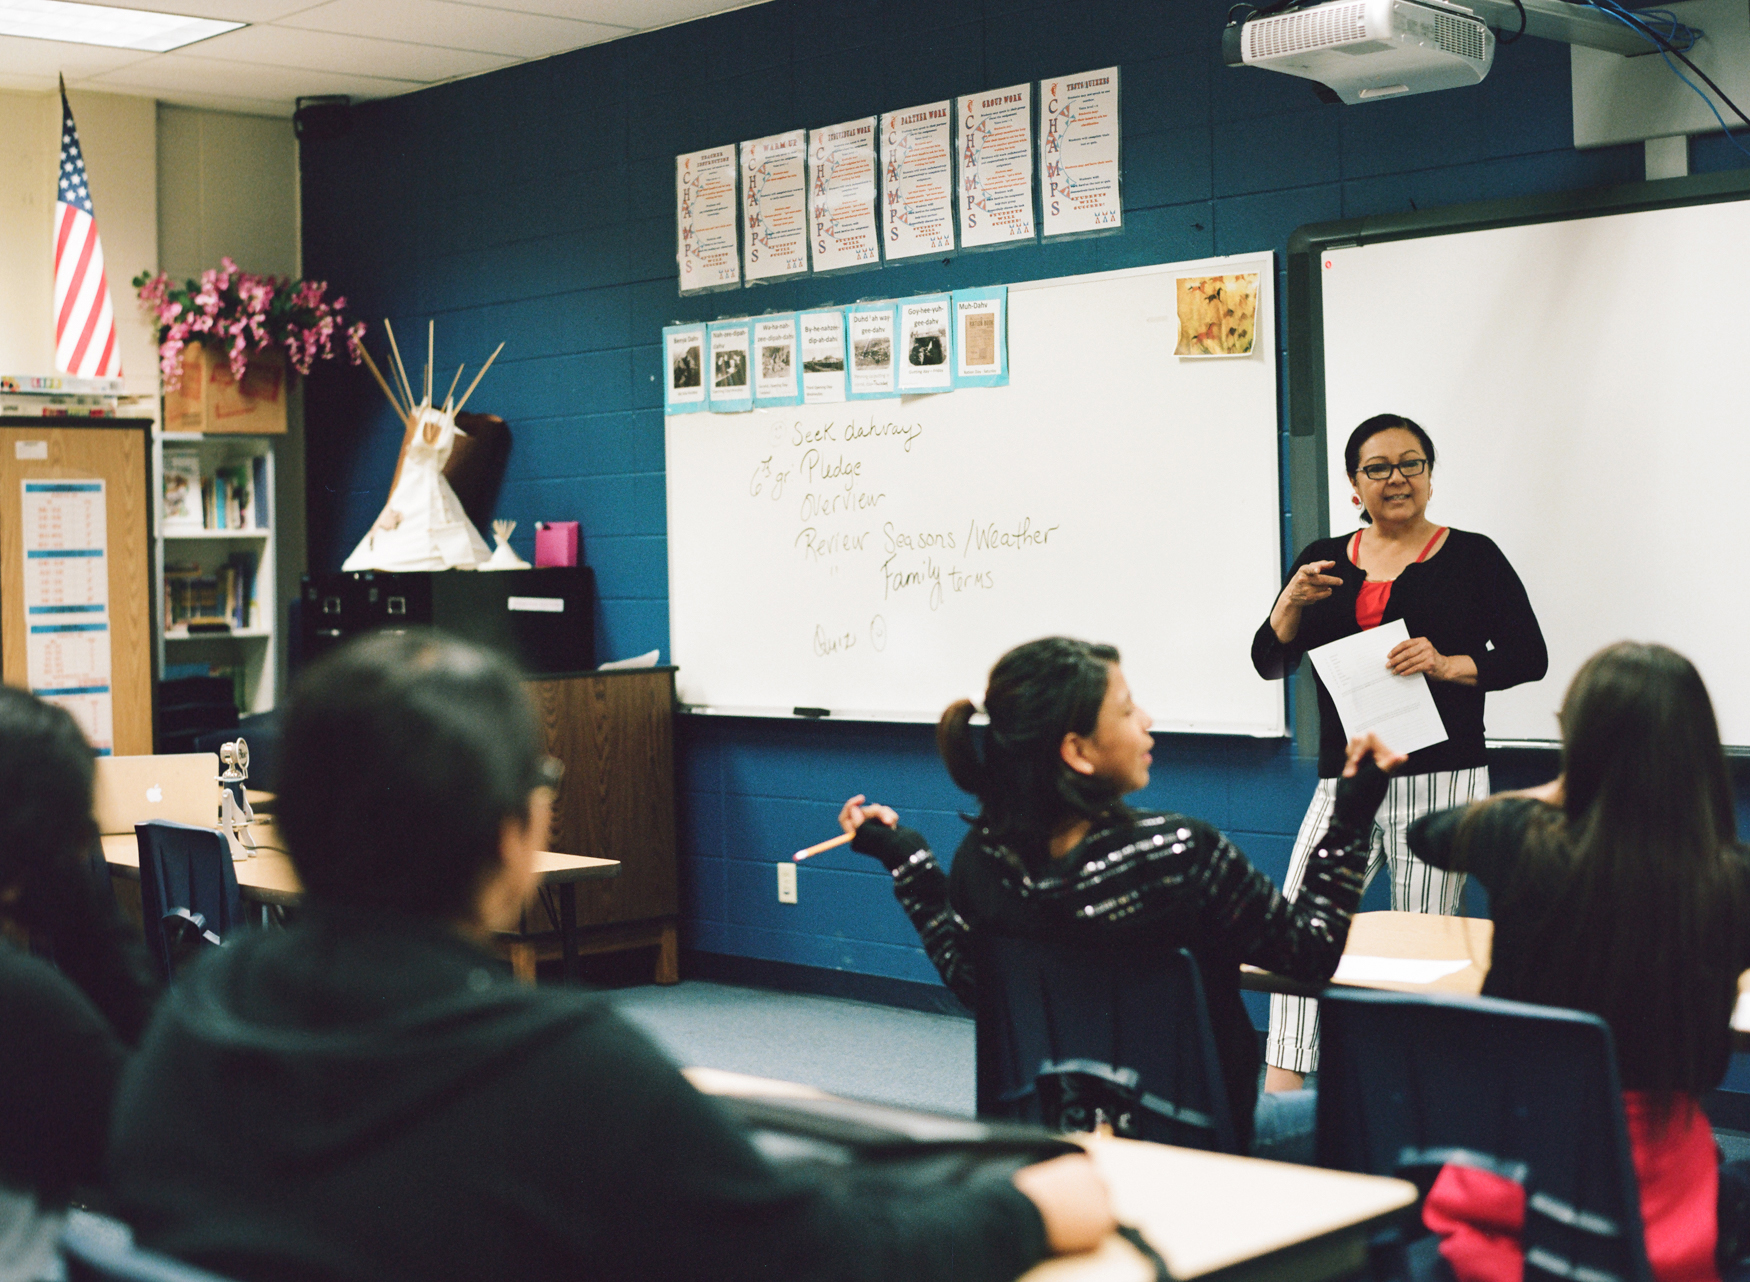 Formerly an educator, Lynette believes in preserving and sharing the Shoshone language and culture to instill pride within the next generation on the Wind River Reservation.